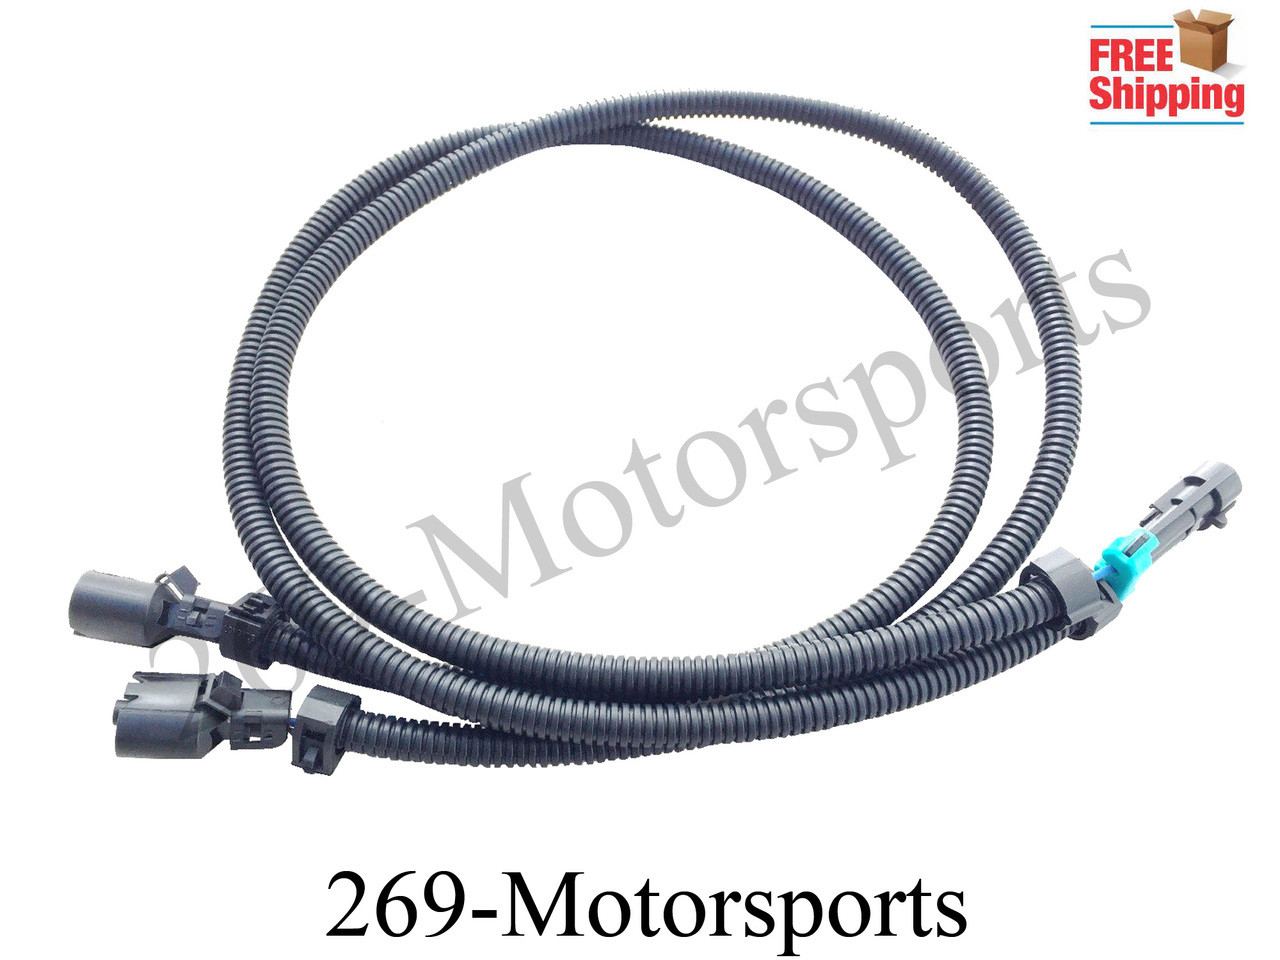 knock sensor extension wiring harness for ls1 ls6 to ls2 rh 269motorsports com Engine Wiring Harness PSI Wiring Harness